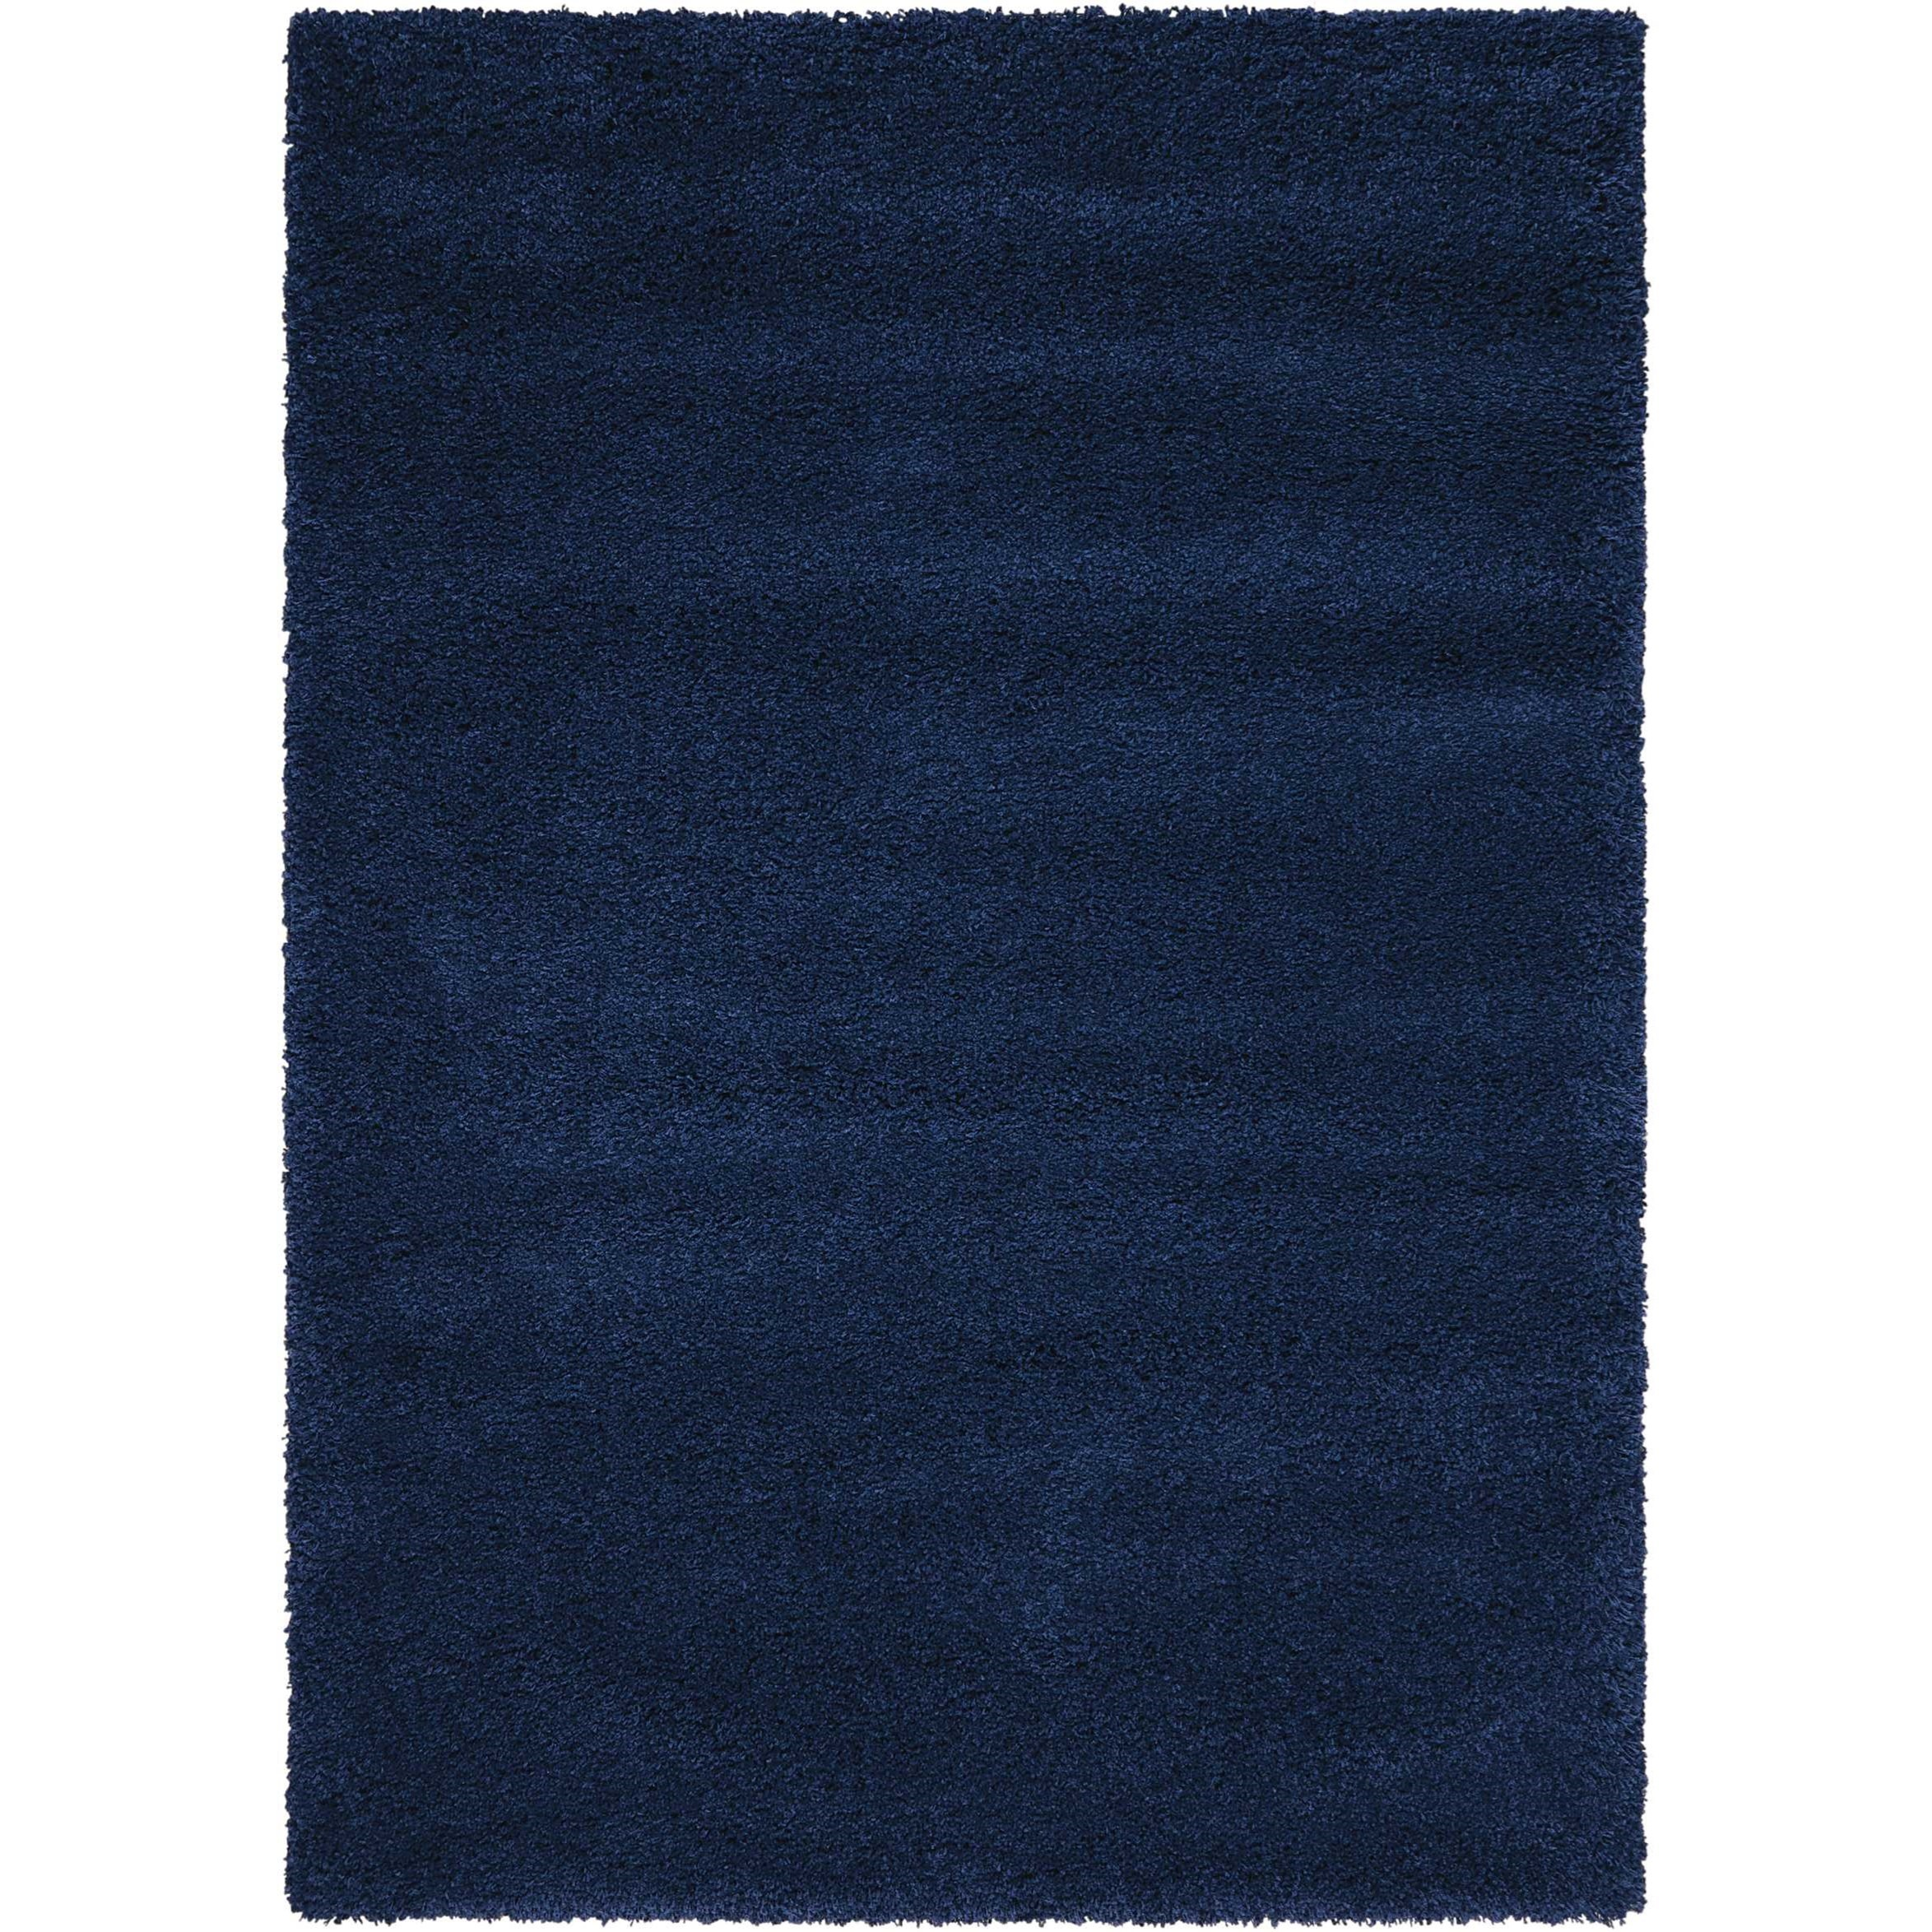 """Amore 5'3"""" x 7'5"""" Ink Rectangle Rug by Nourison at Home Collections Furniture"""